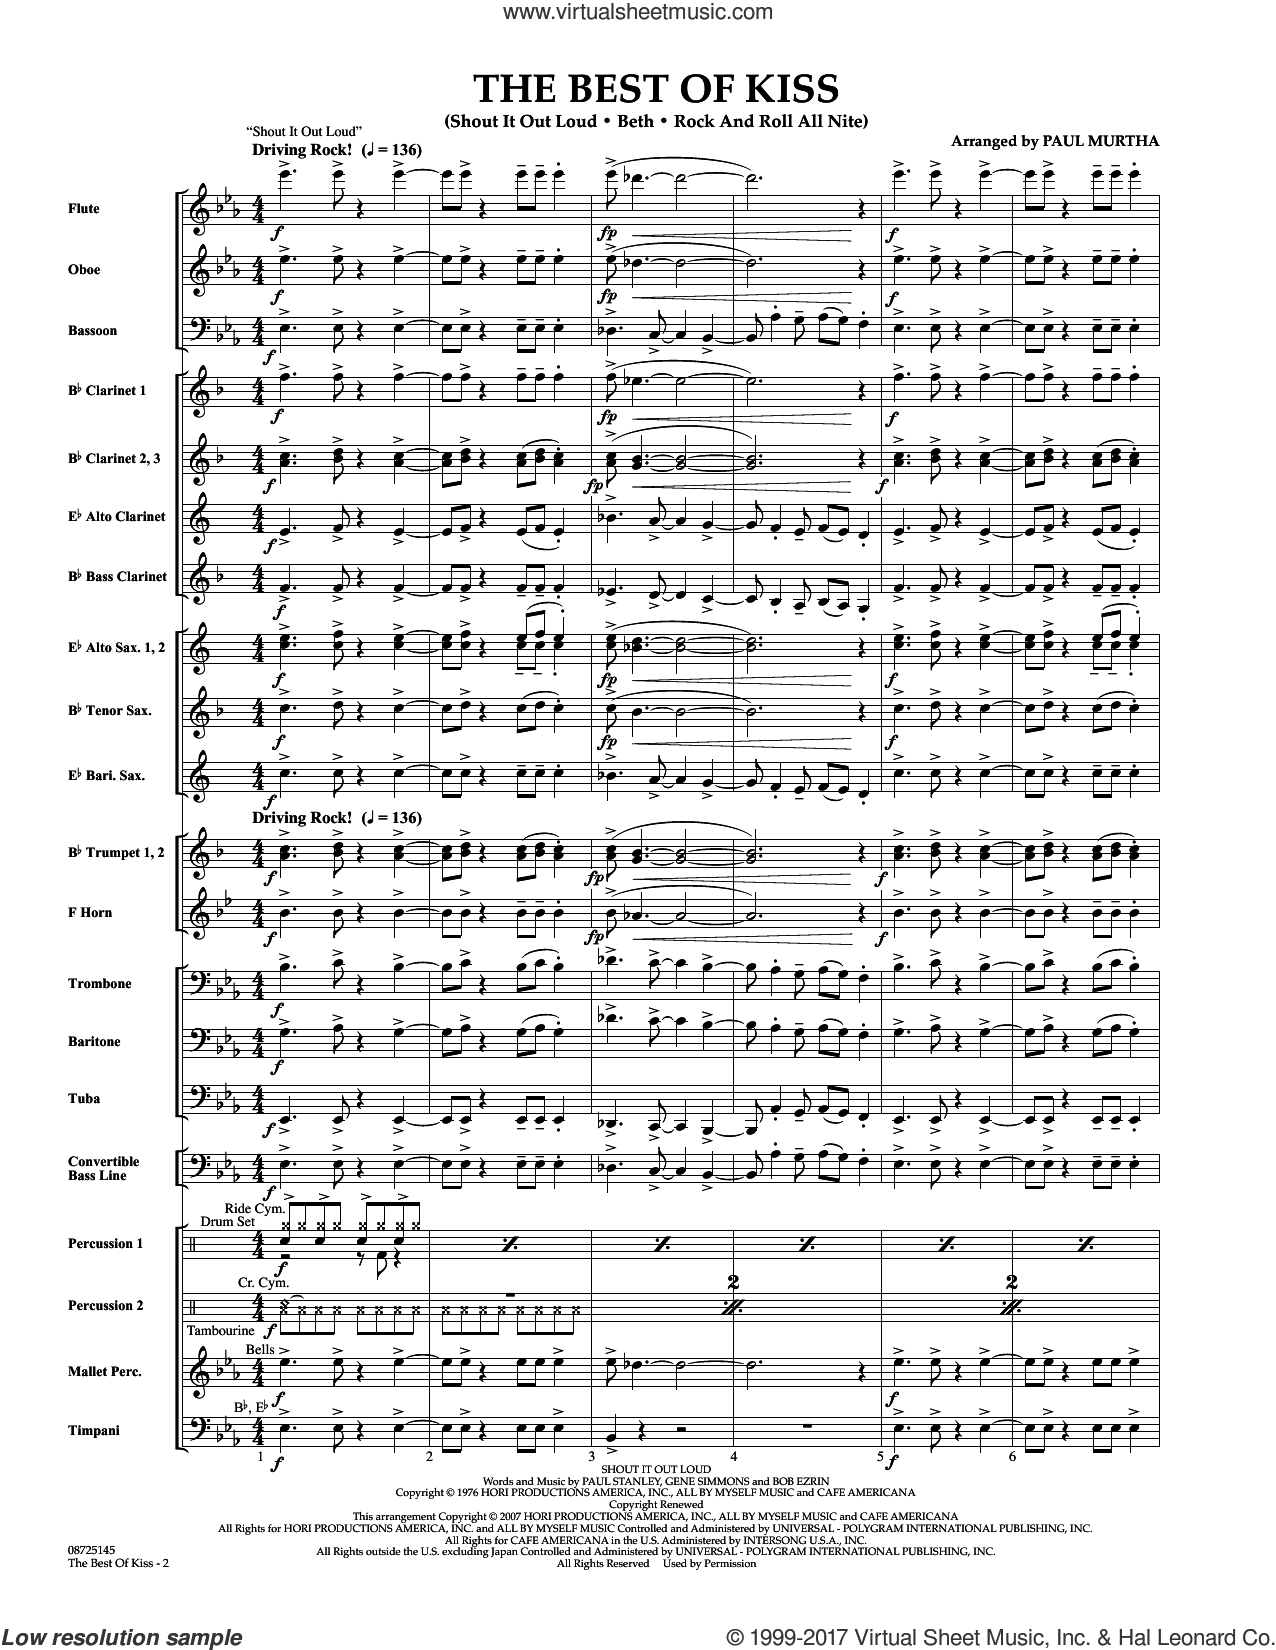 The Best of Kiss (COMPLETE) sheet music for concert band by Paul Murtha, intermediate. Score Image Preview.